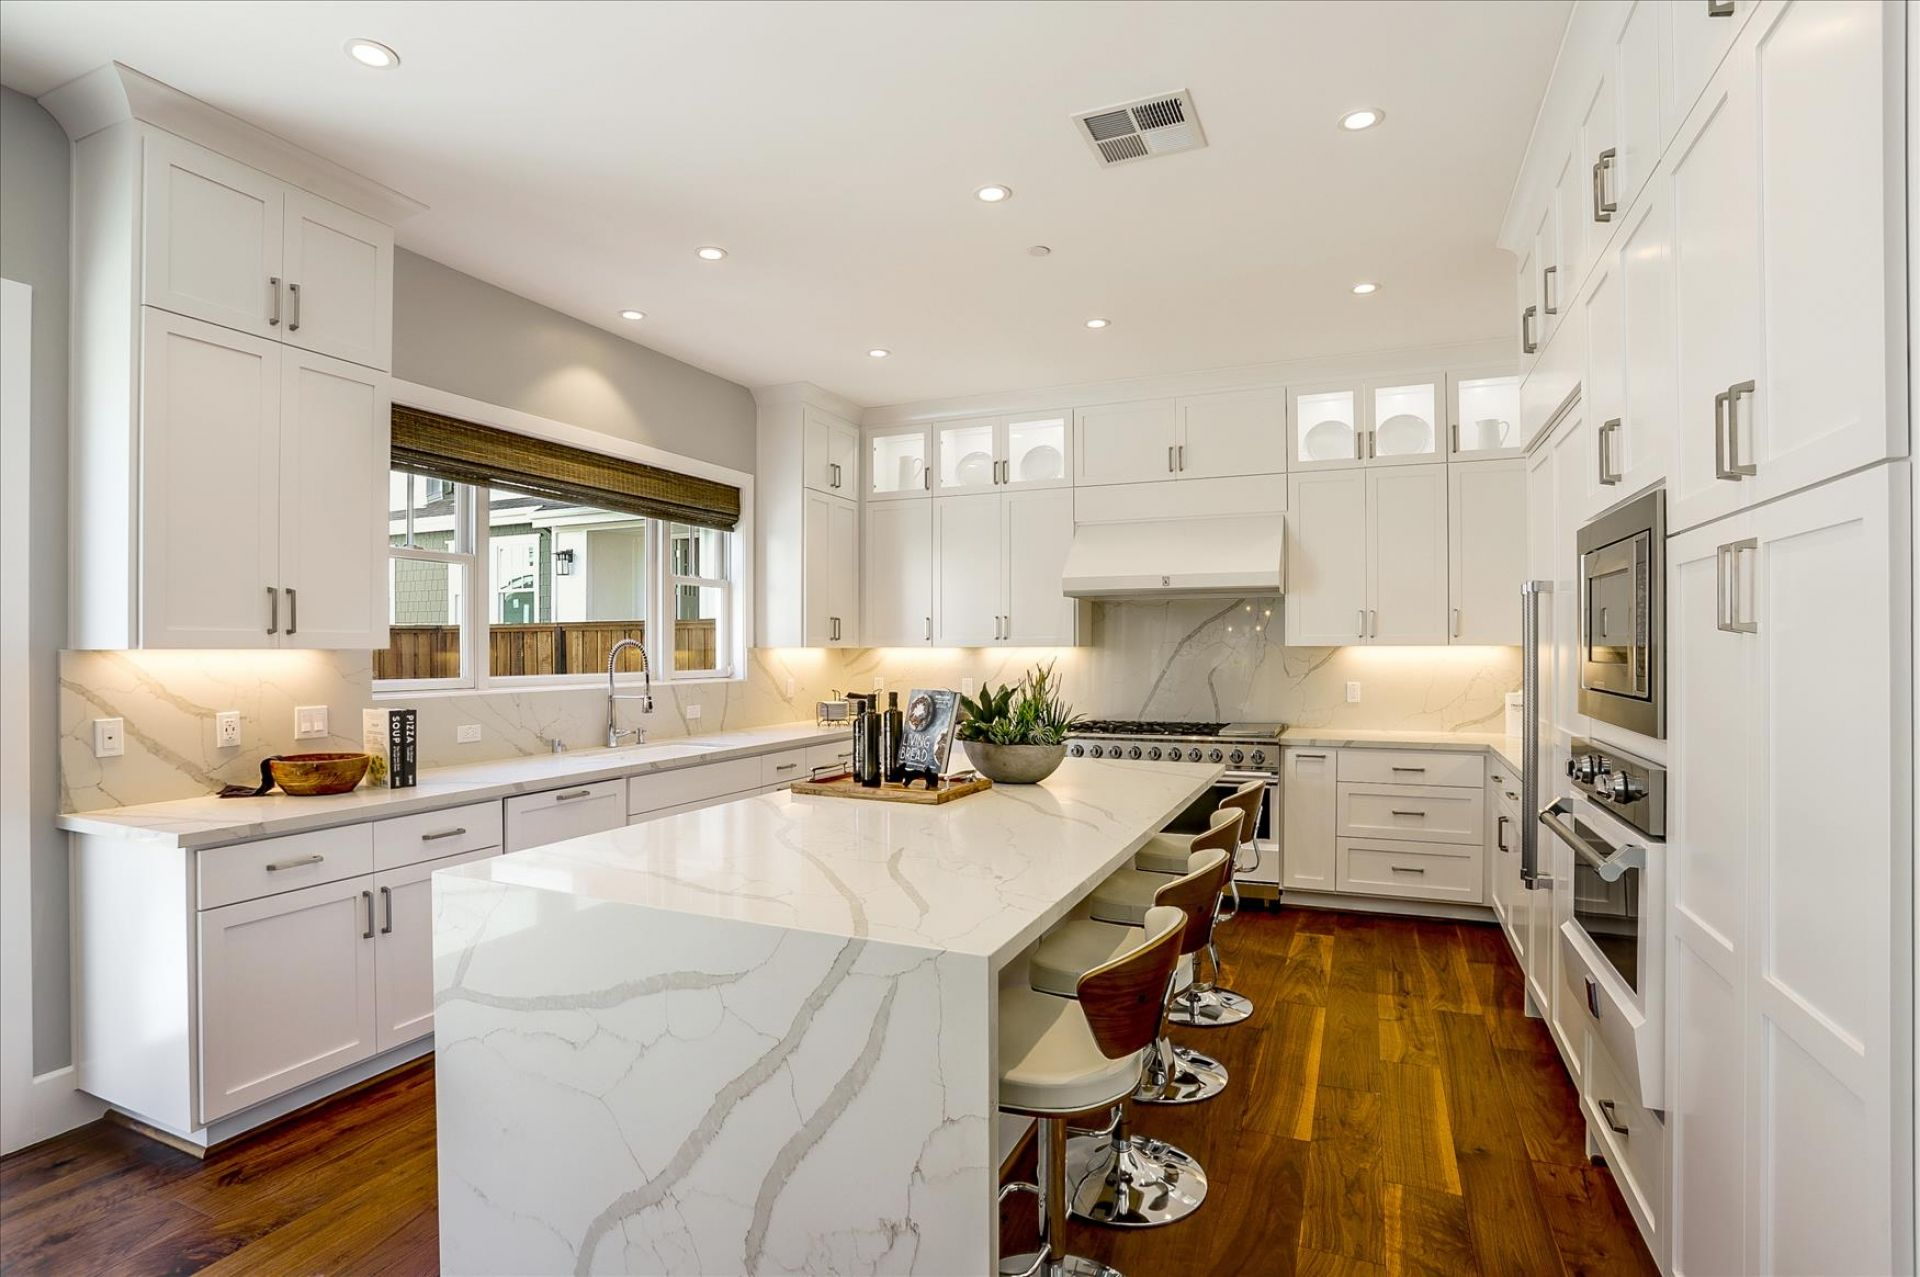 Kitchen featured in the 7D By SummerHill Homes in San Jose, CA